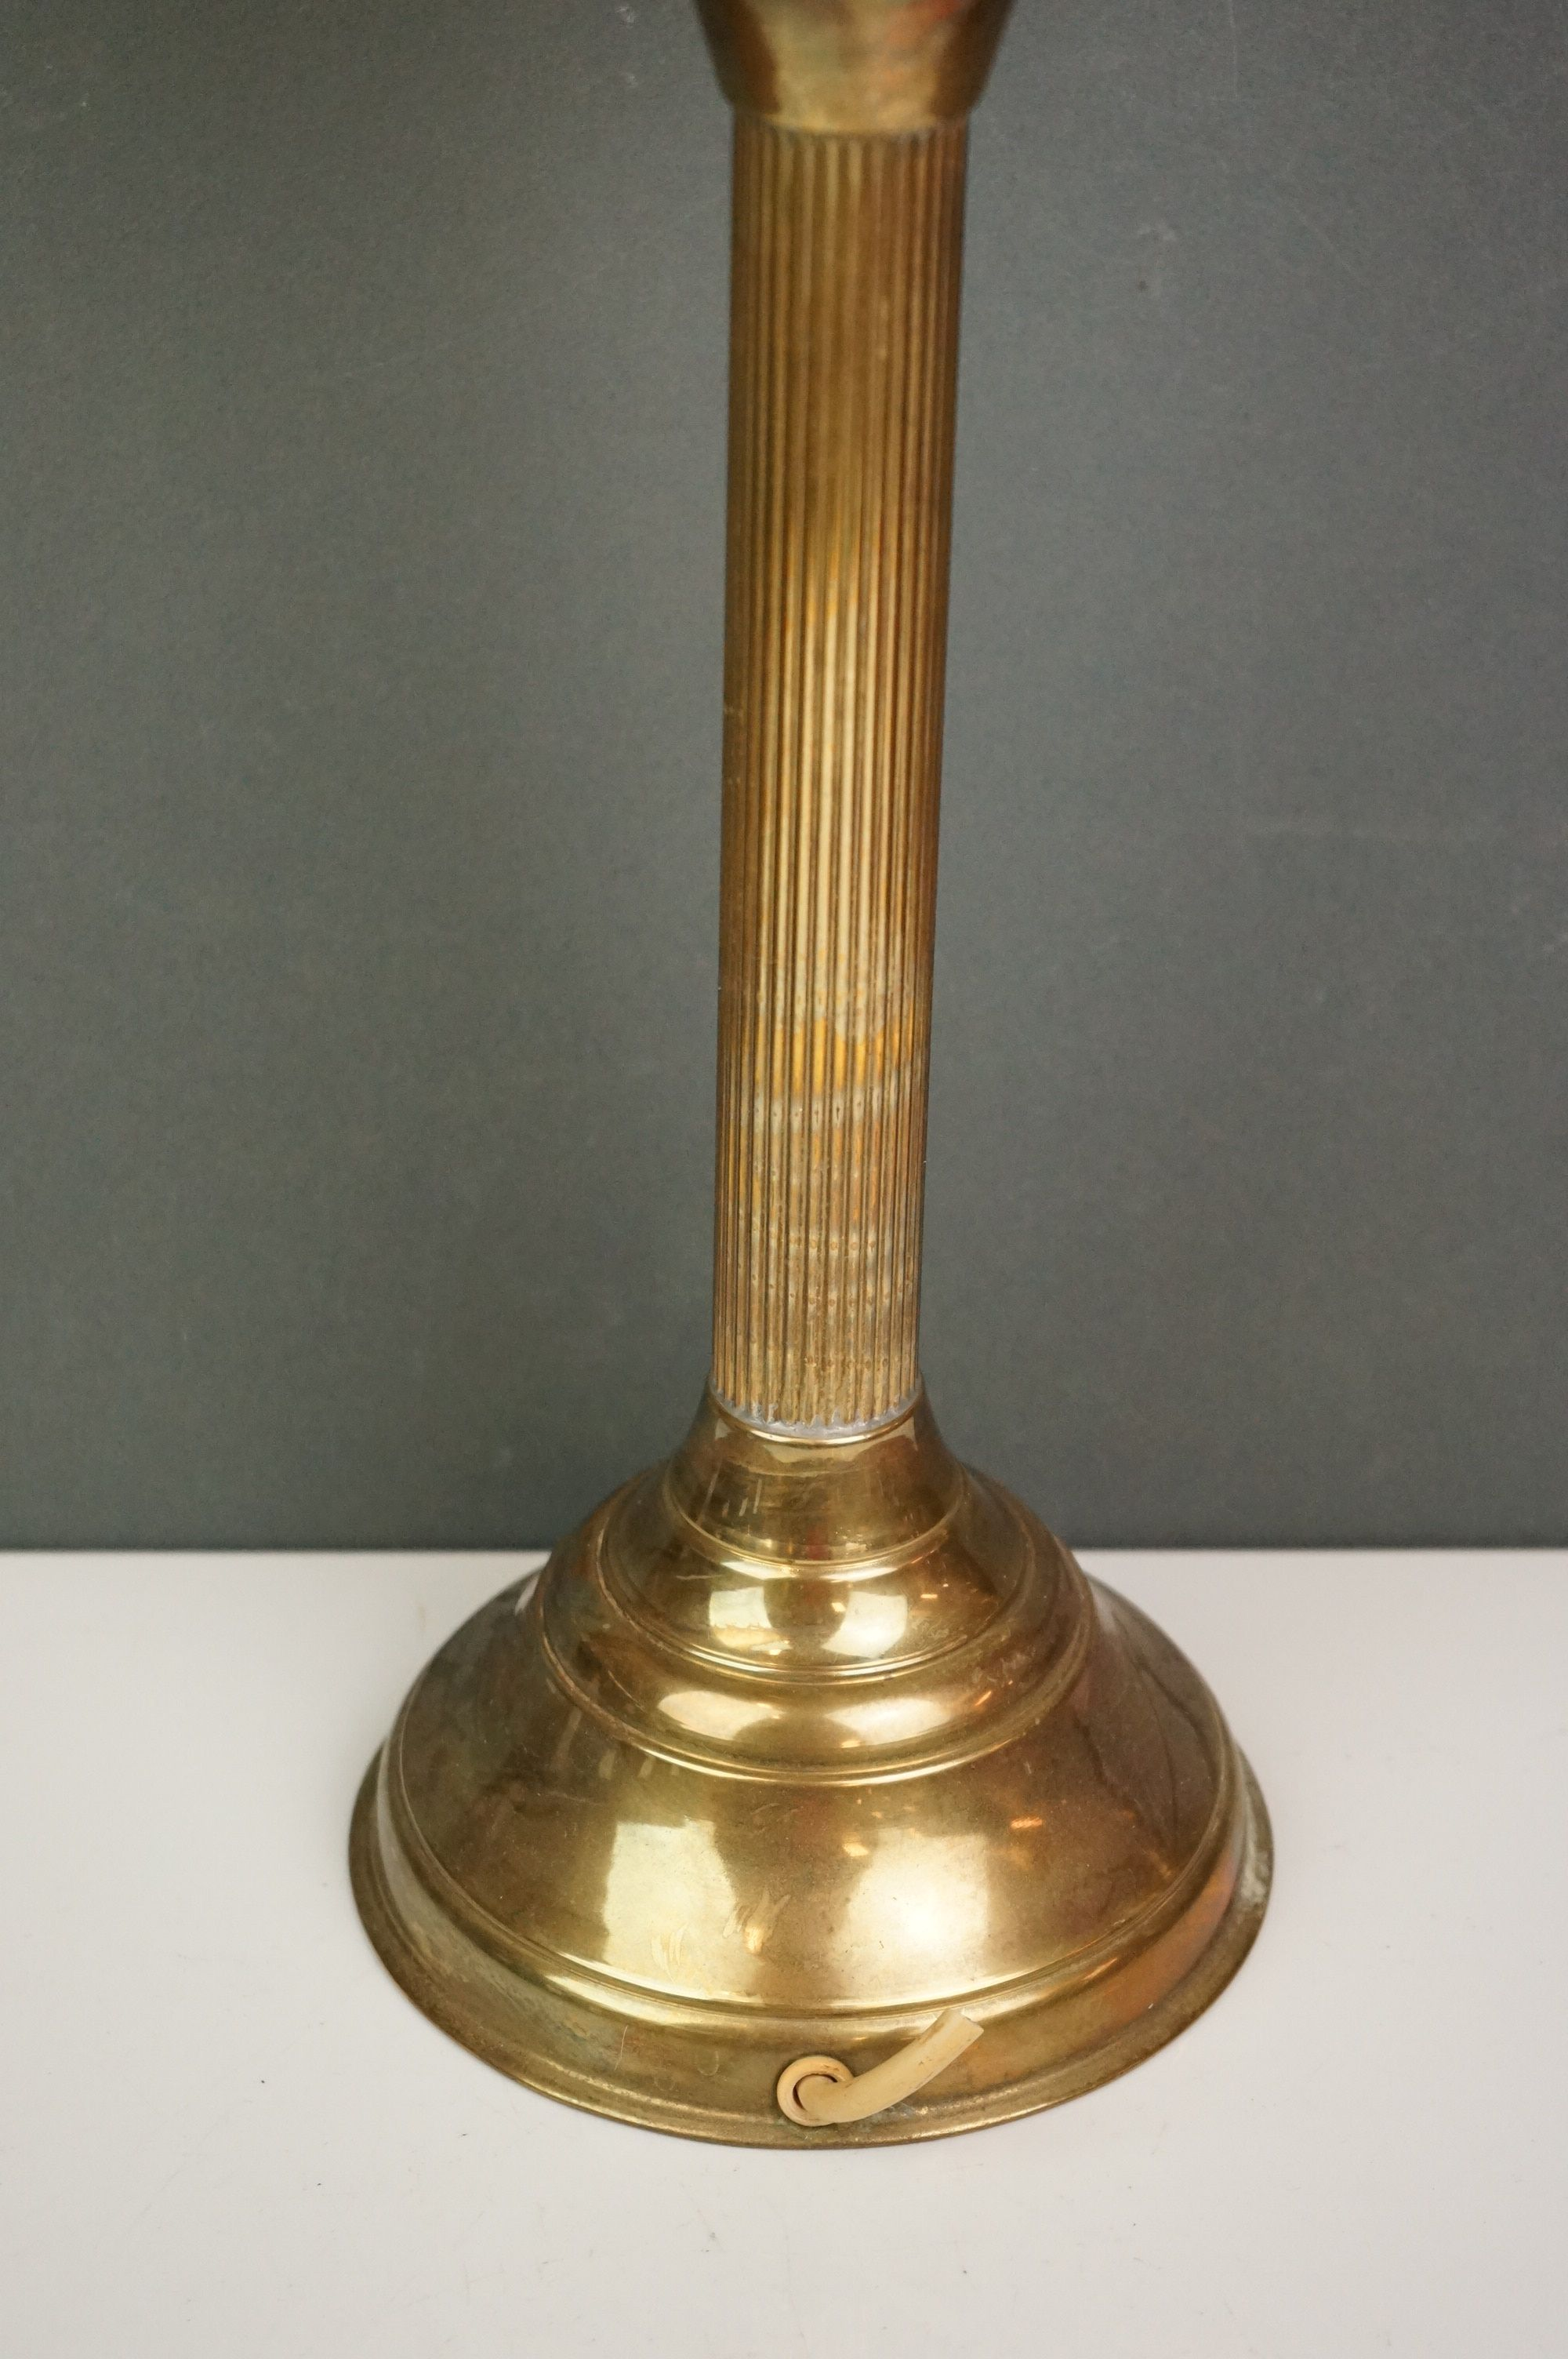 A vintage brass oil lamp with orange glass shade converted to electric. - Image 3 of 4